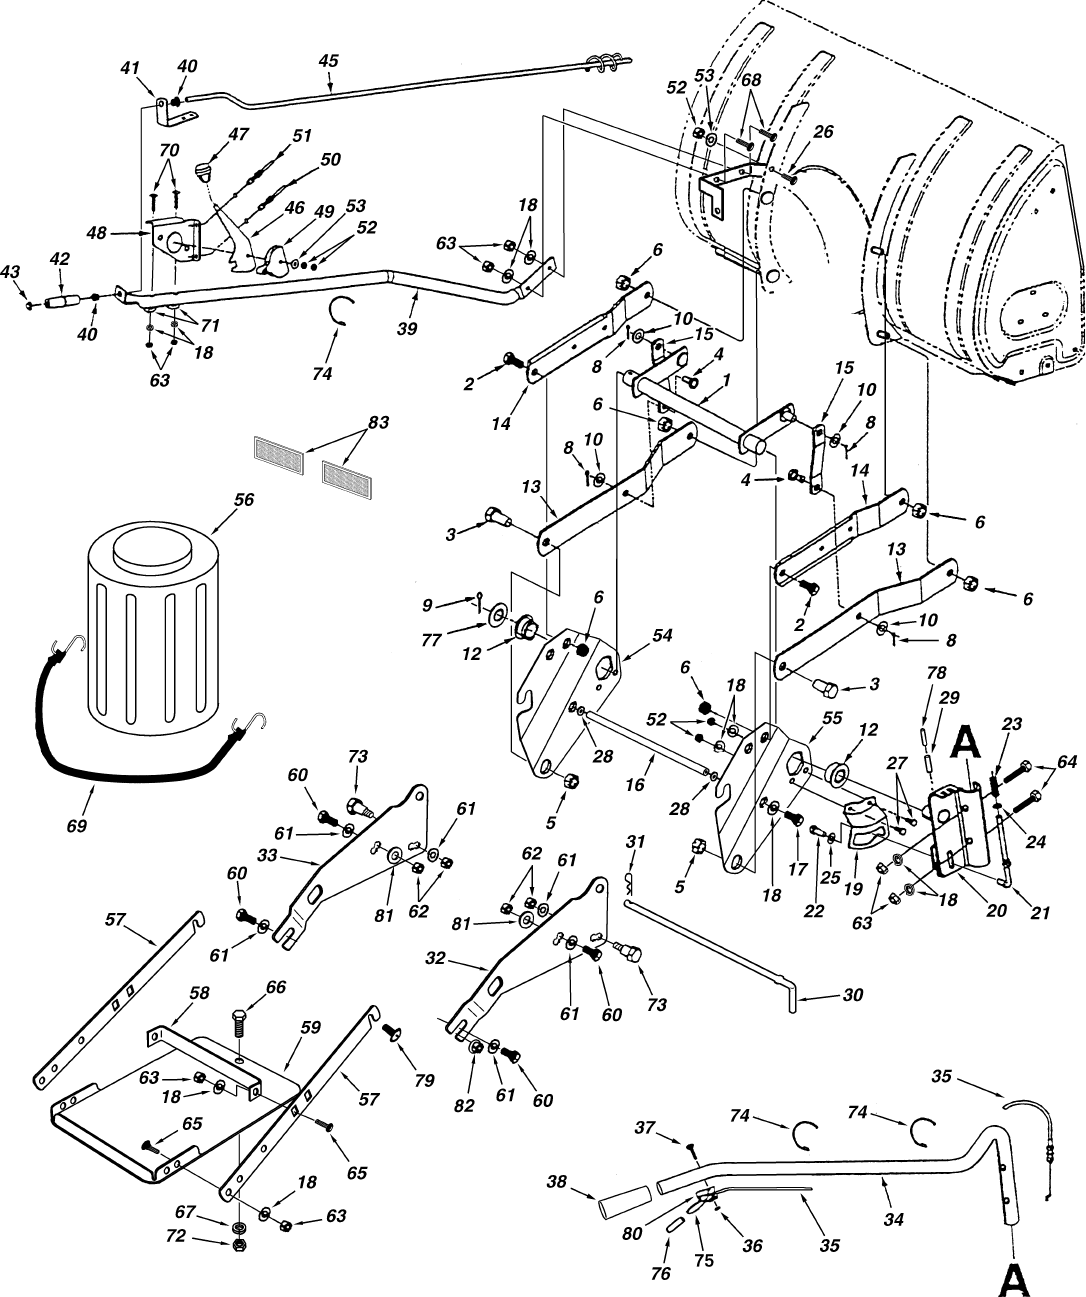 Page 24 of Sears Snow Blower 486.248392 User Guide